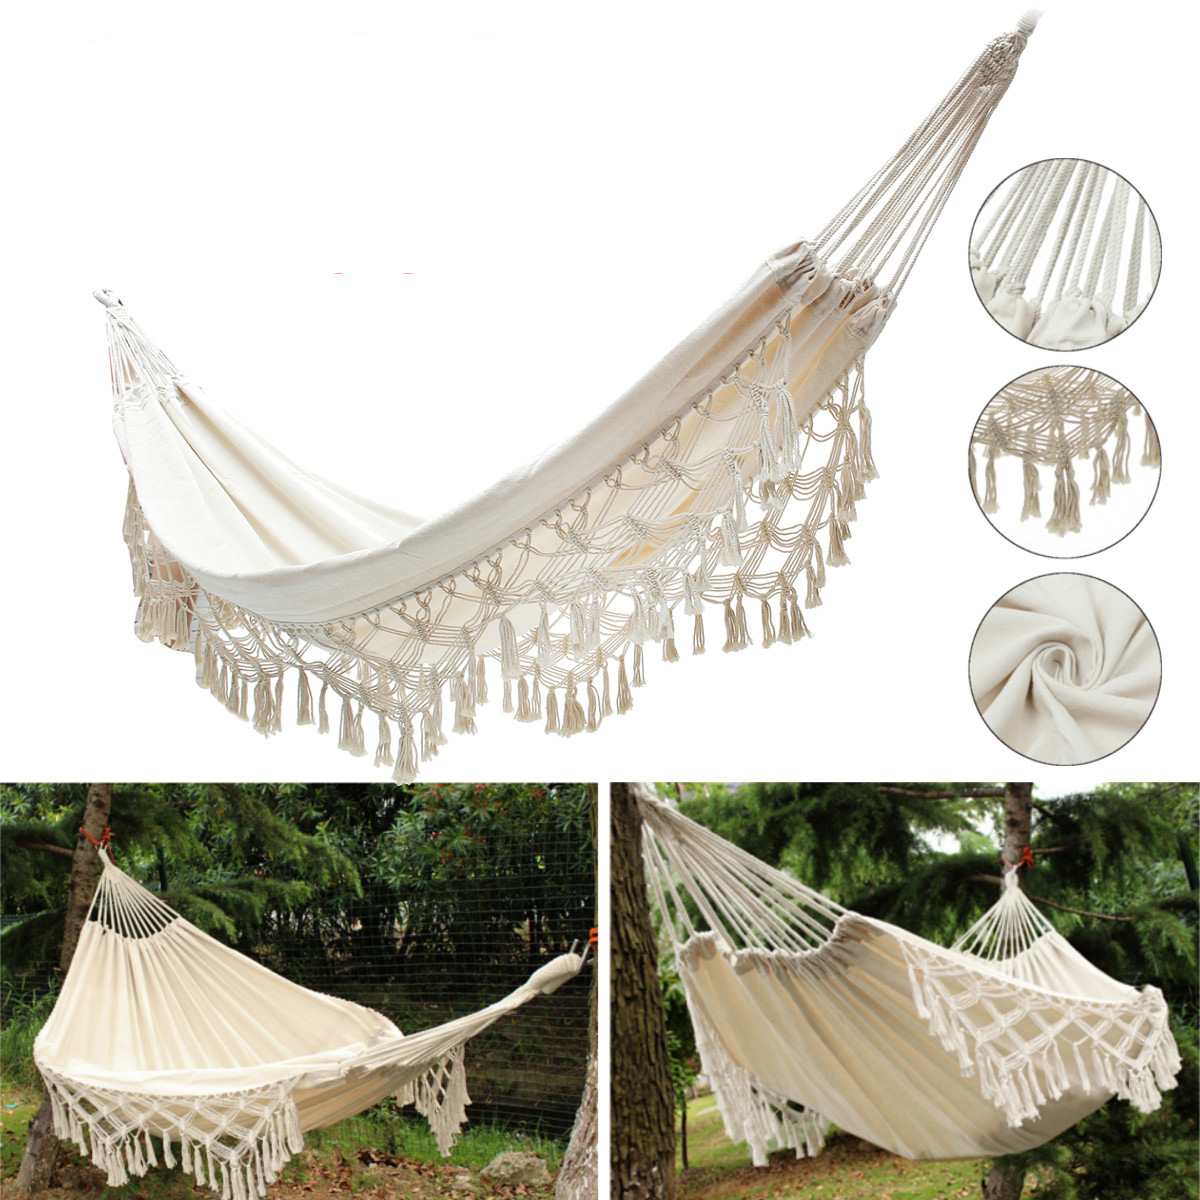 240x150CM Large Double Cotton Hammock Fringe Swing Beac